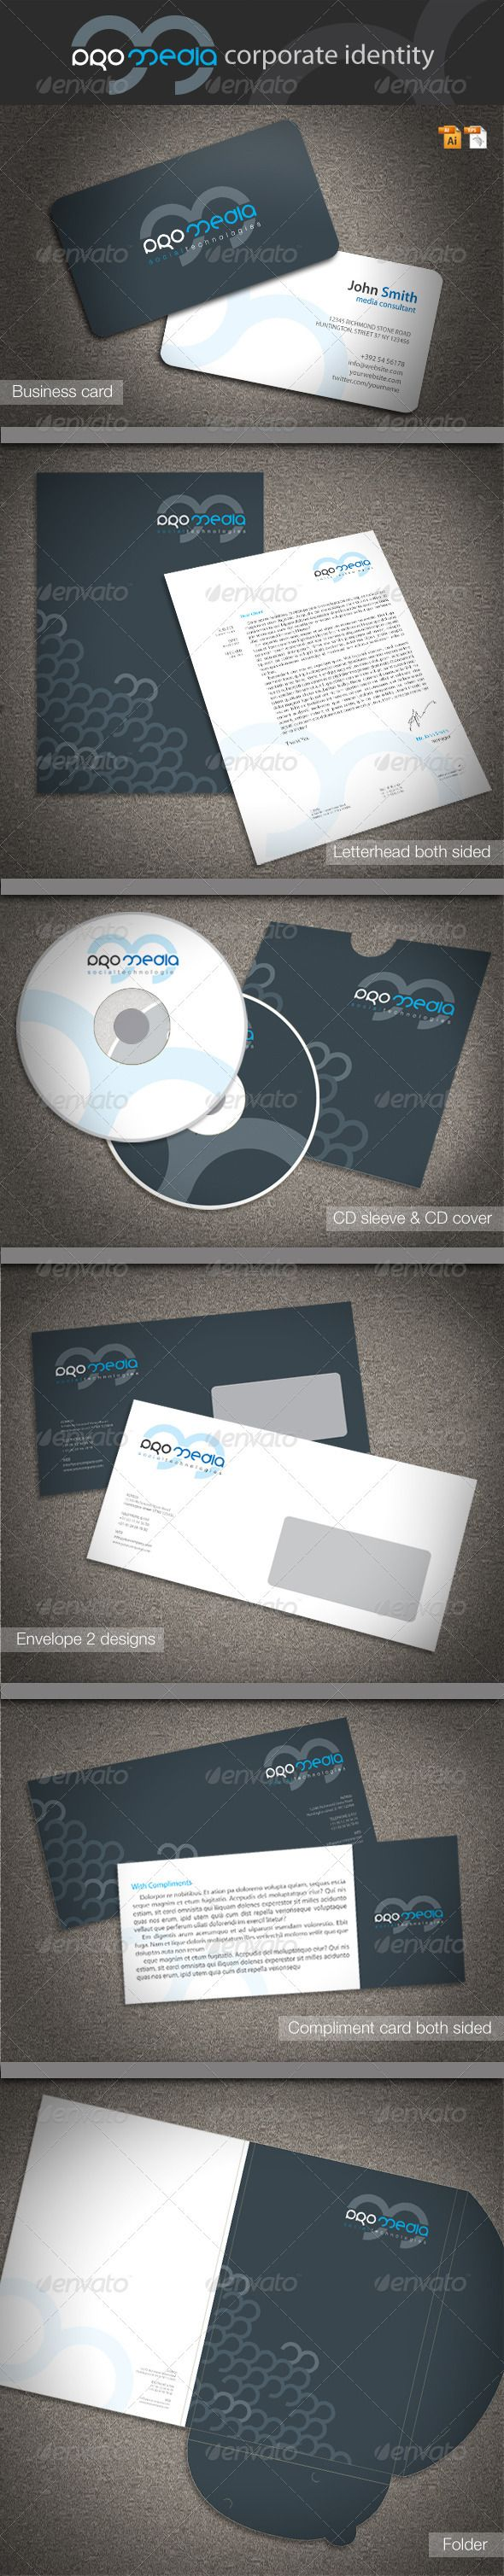 Pro Media Corporate Identity  Corporate Identity Stationery